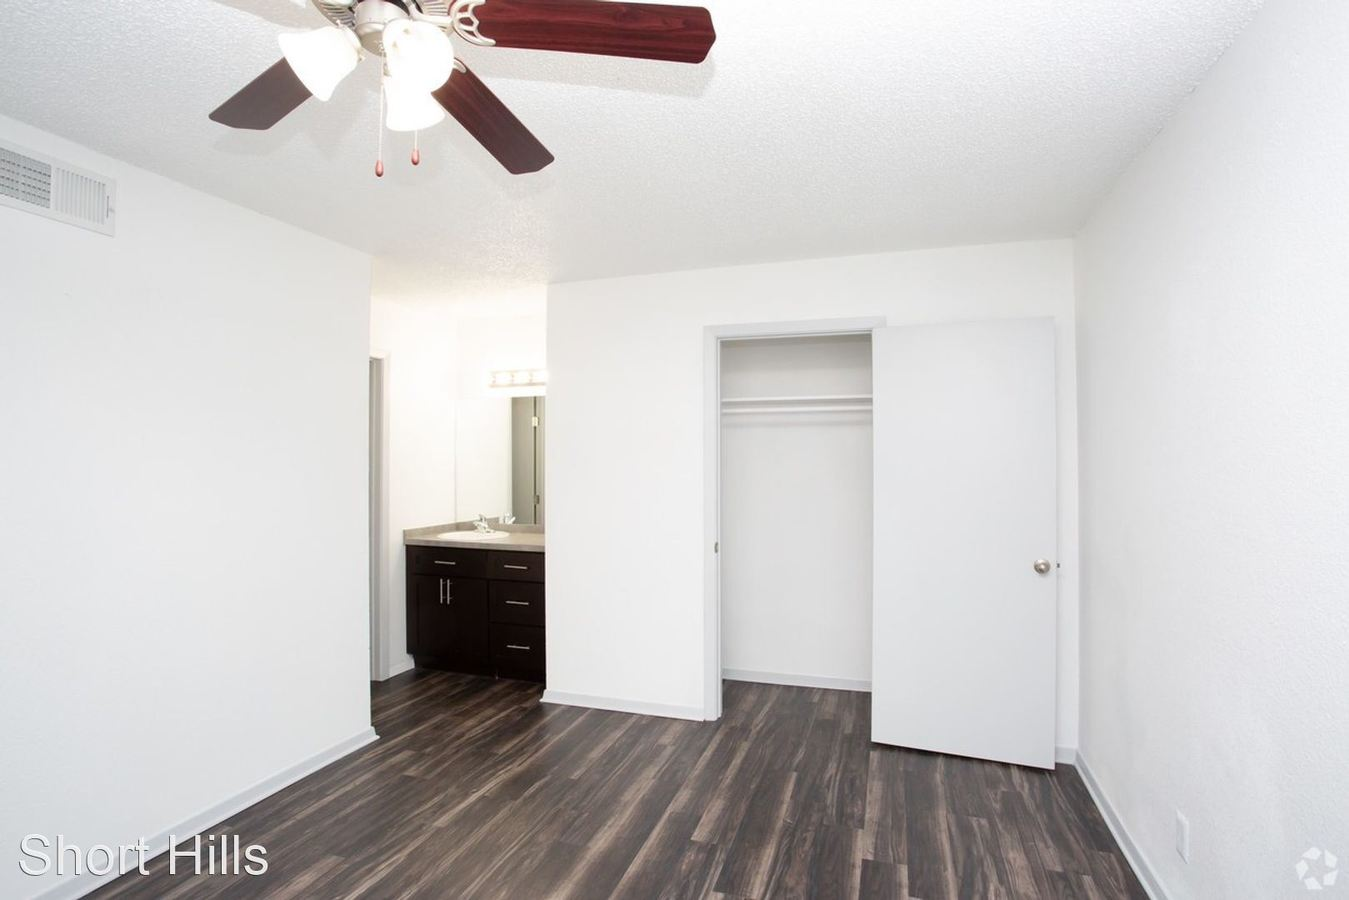 1 Bedroom 1 Bathroom Apartment for rent at Short Hills North in Austin, TX